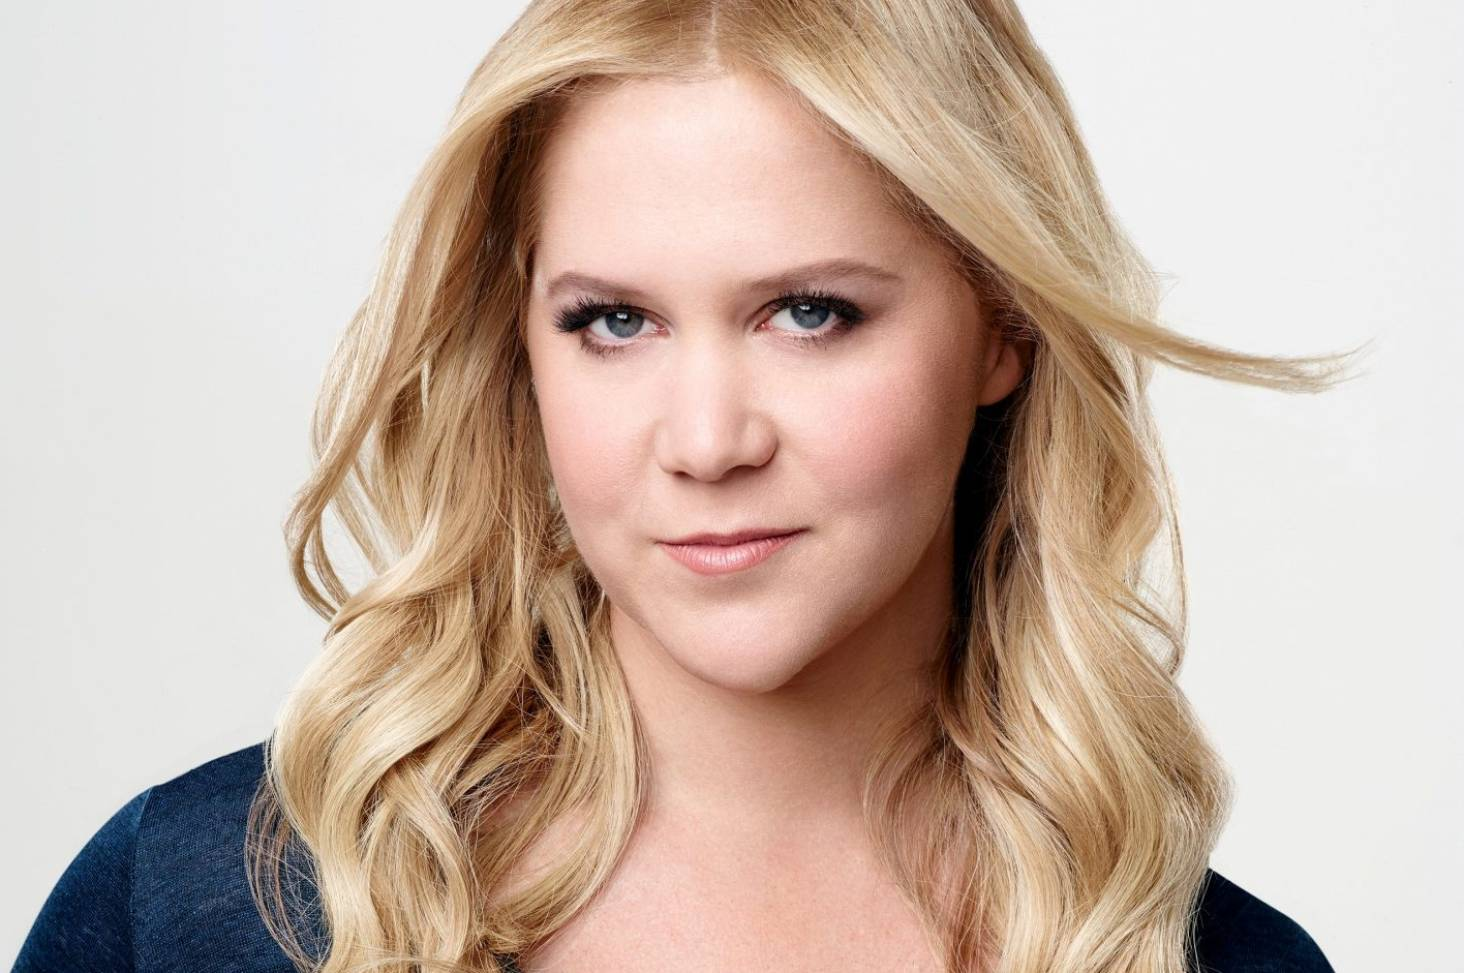 Amy Schumer Caught In Crossfire After Comedy Writers Rape Comments